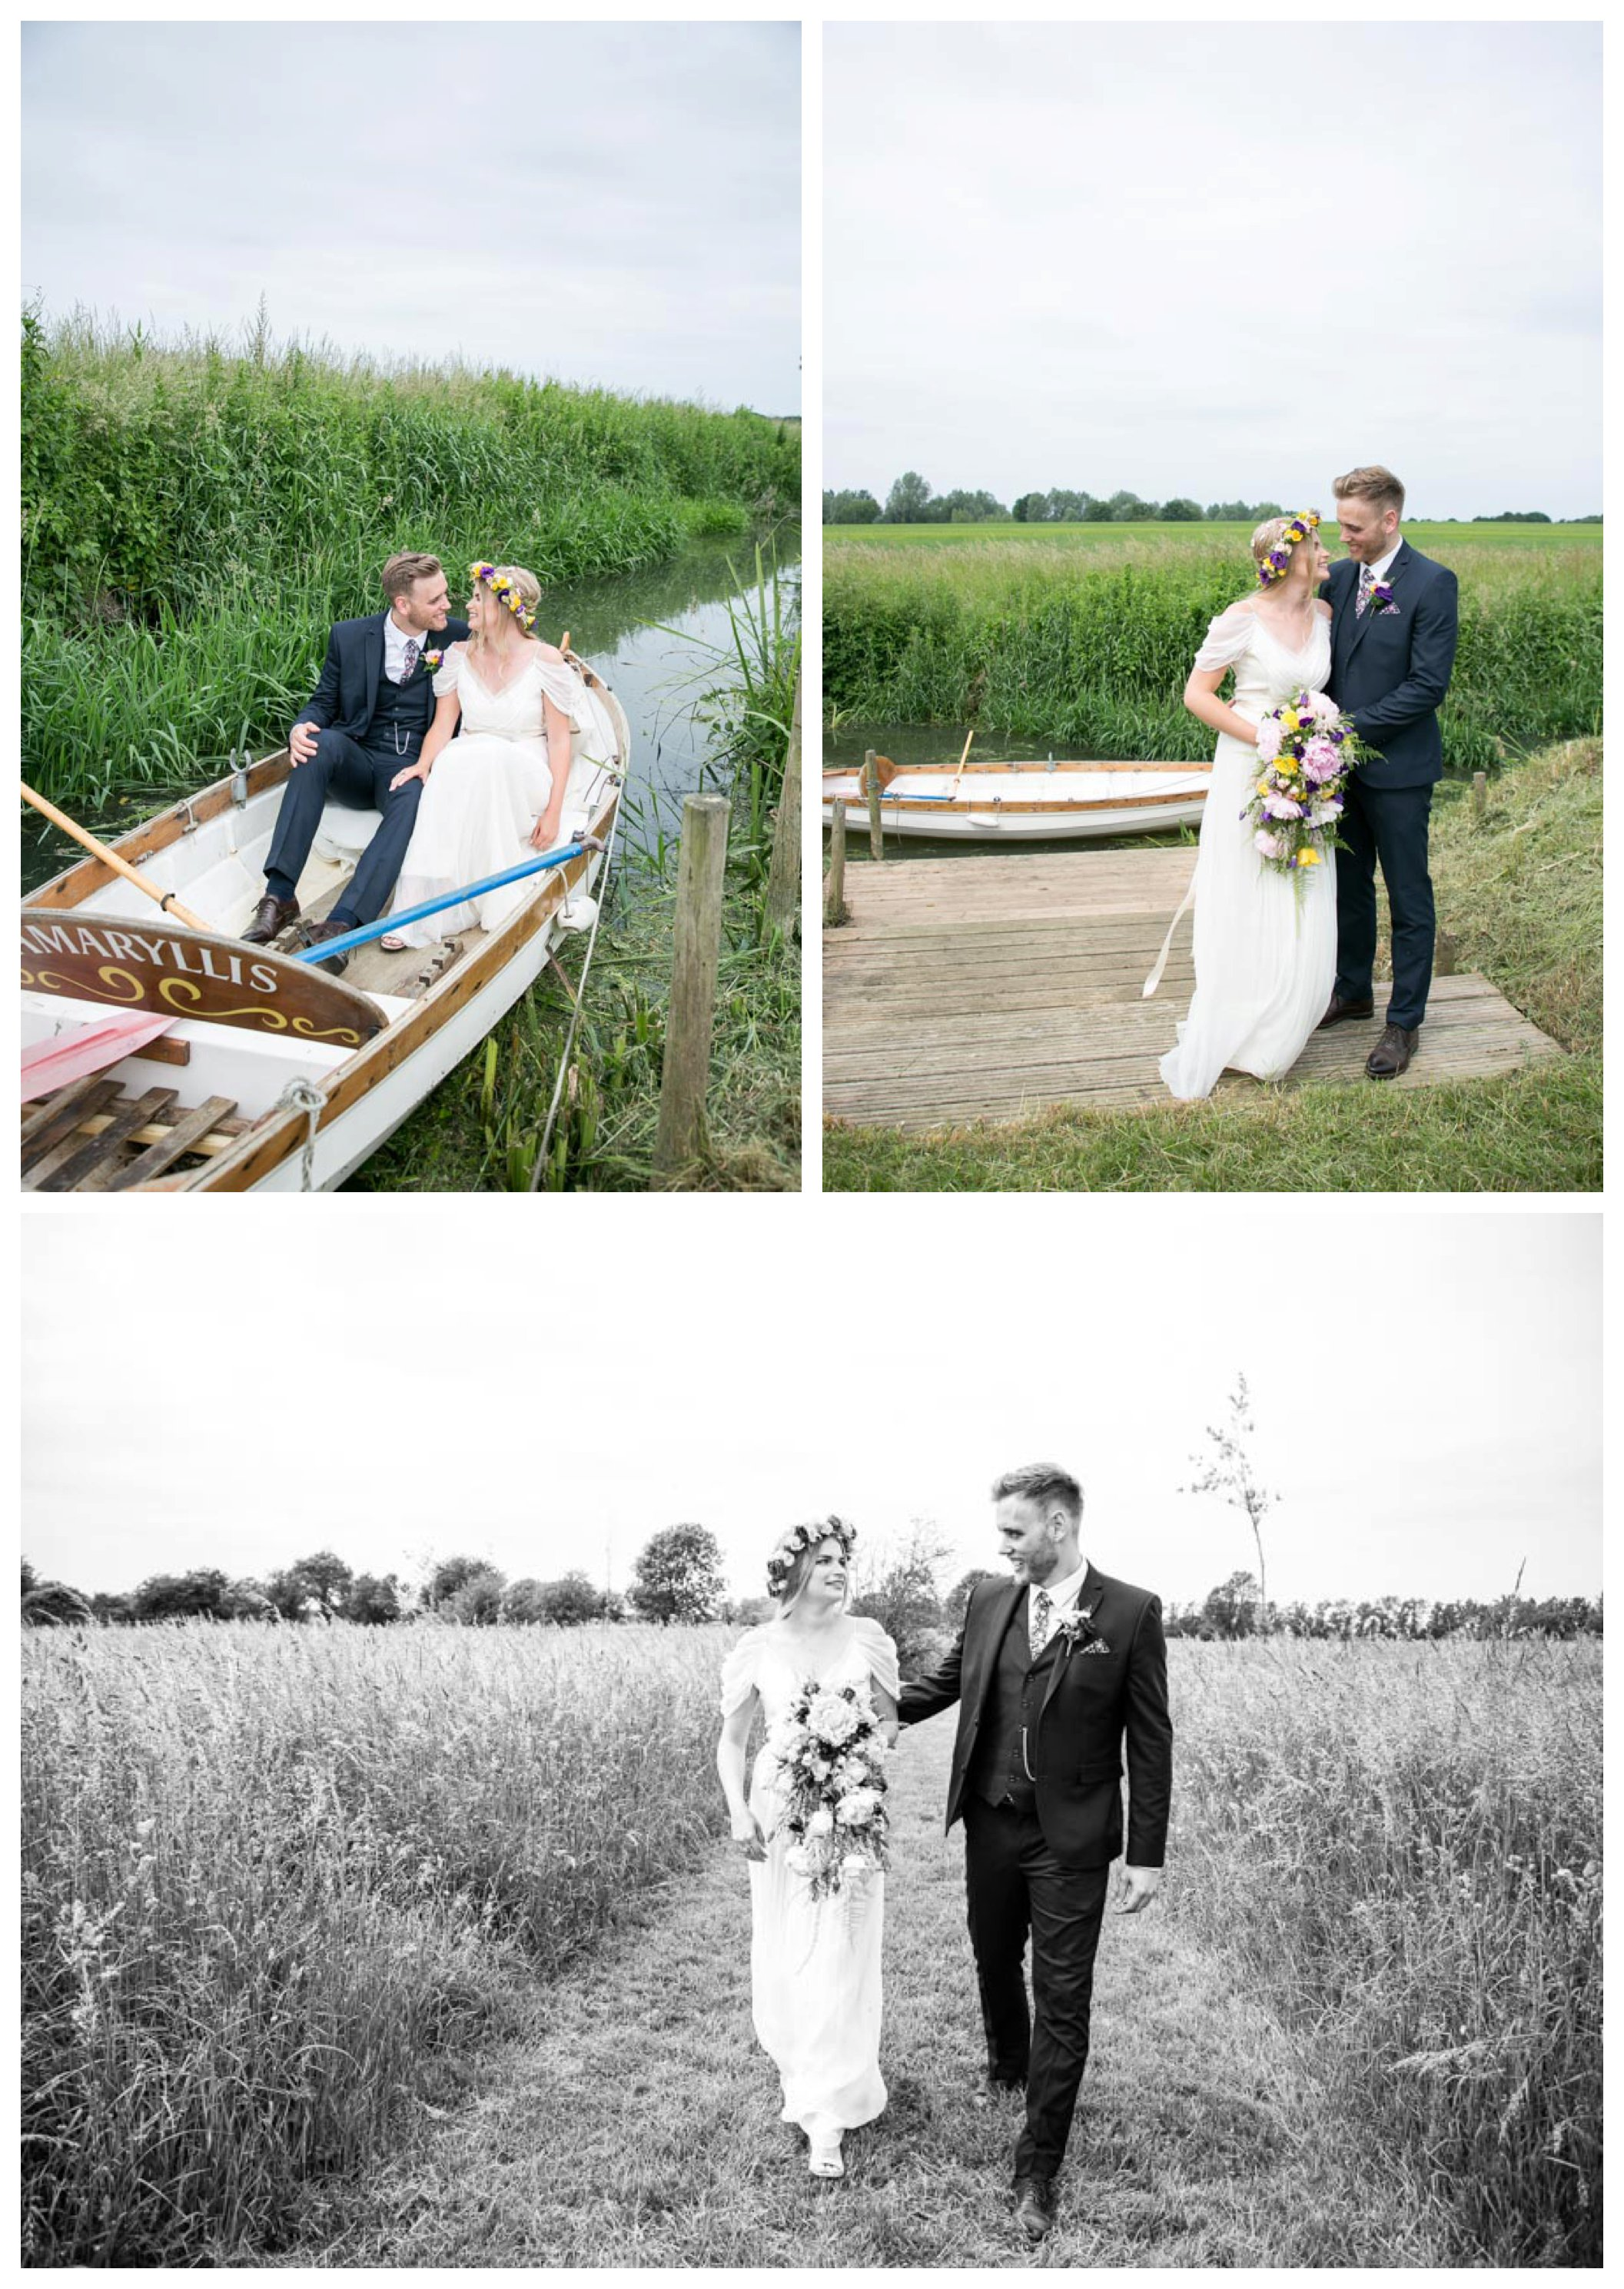 happy couple at wedding on rowing boat and walking along in a field at Reid Rooms wedding